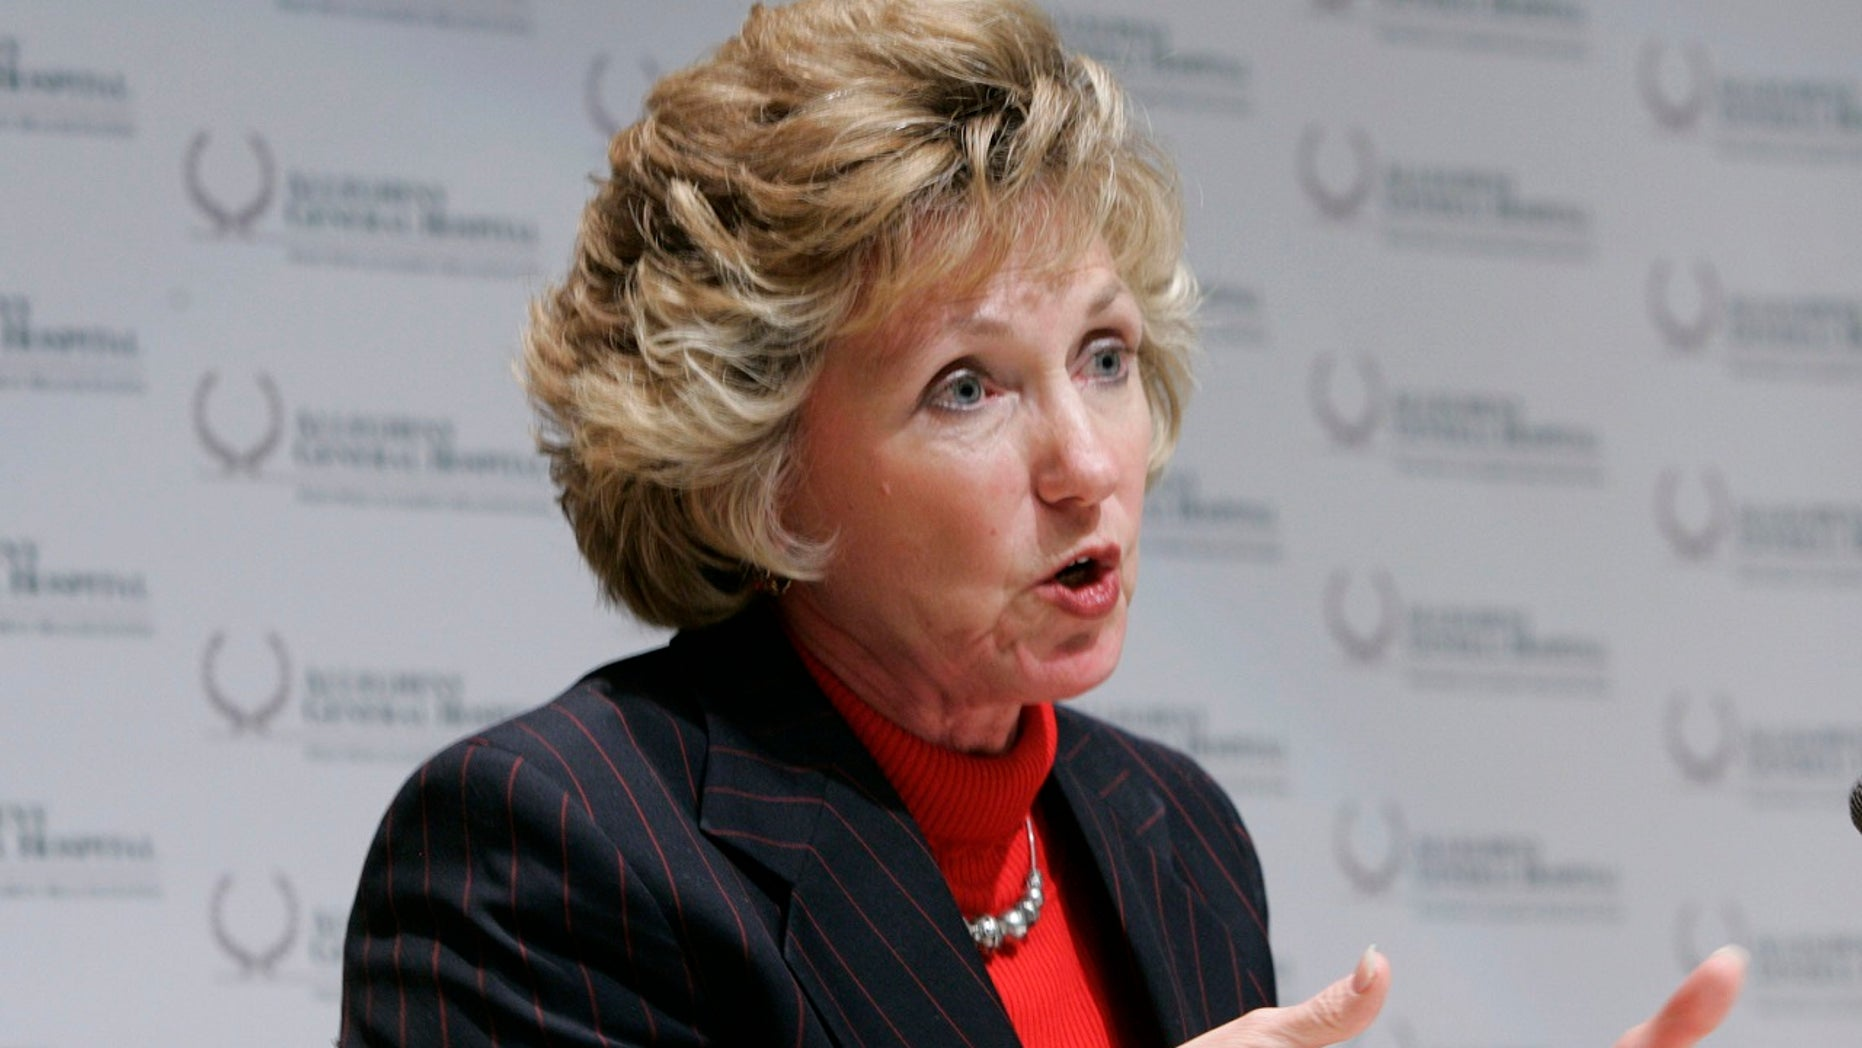 Gayle Manchin speaks during a news conference in Pittsburgh, Jan. 5, 2006.